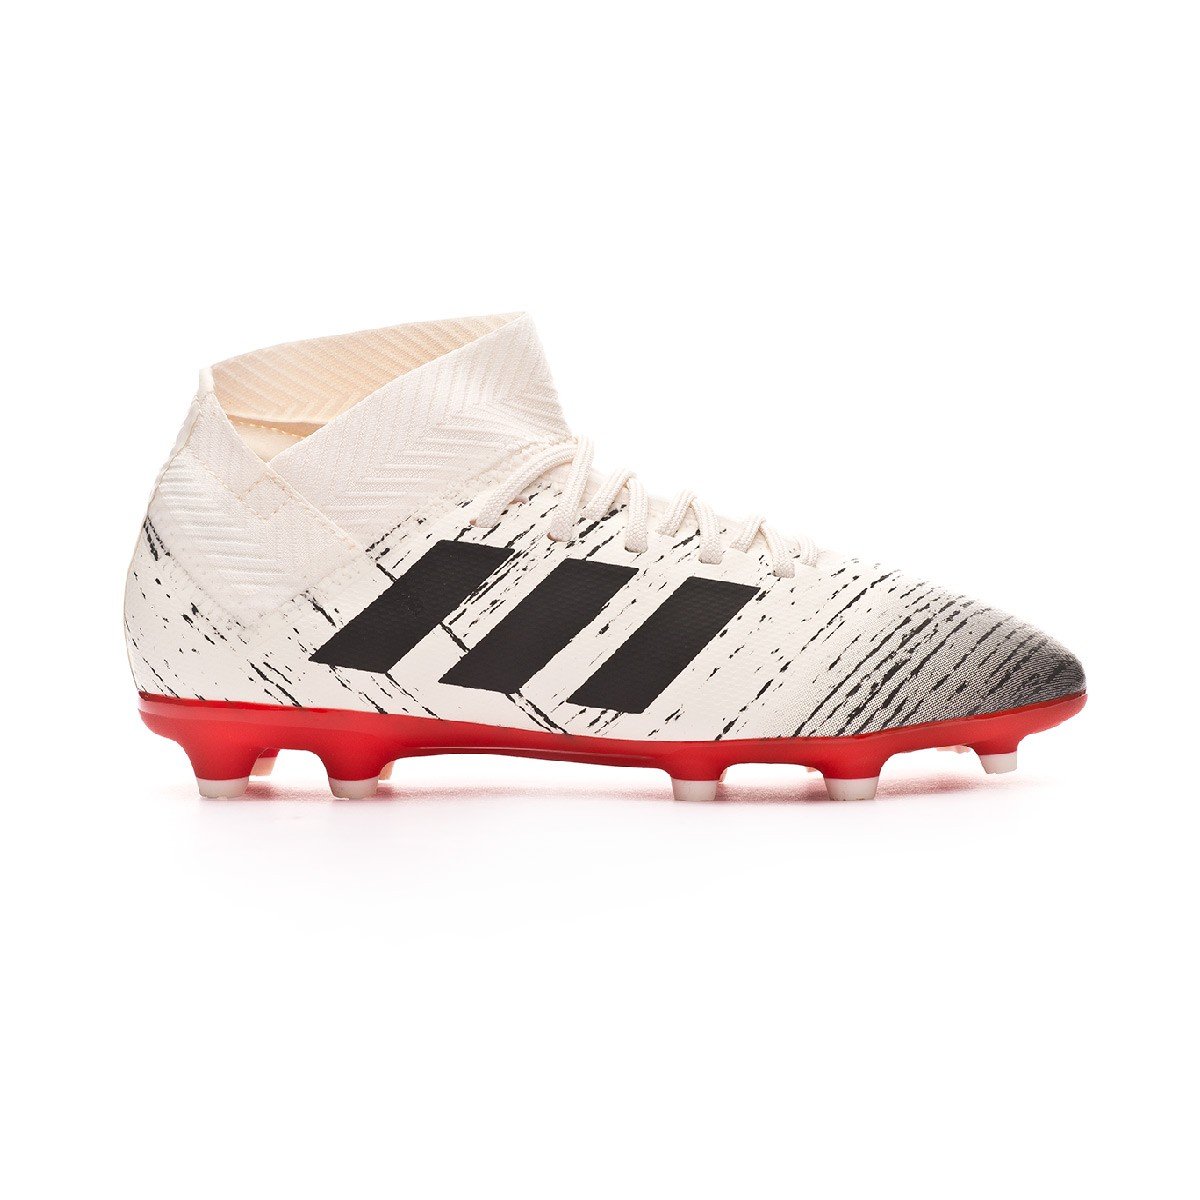 Red Core 18 Bota Niño Nemeziz Black White Fg Off Active 3 lKTJu1c5F3